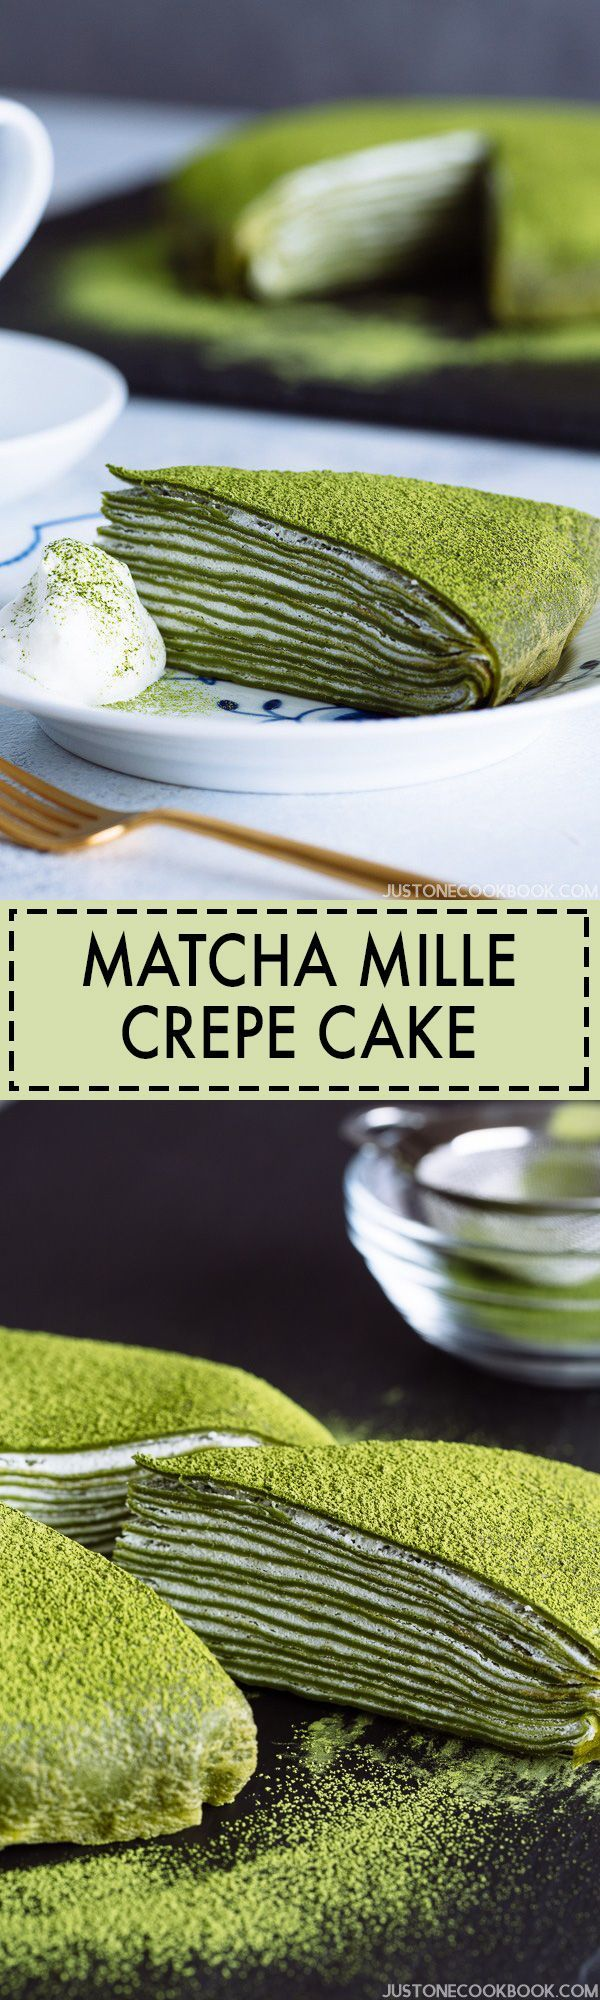 Matcha Mille Crepe Cake 抹茶ミルクレープケーキ | Easy Japanese Recipes at JustOneCookbook.com